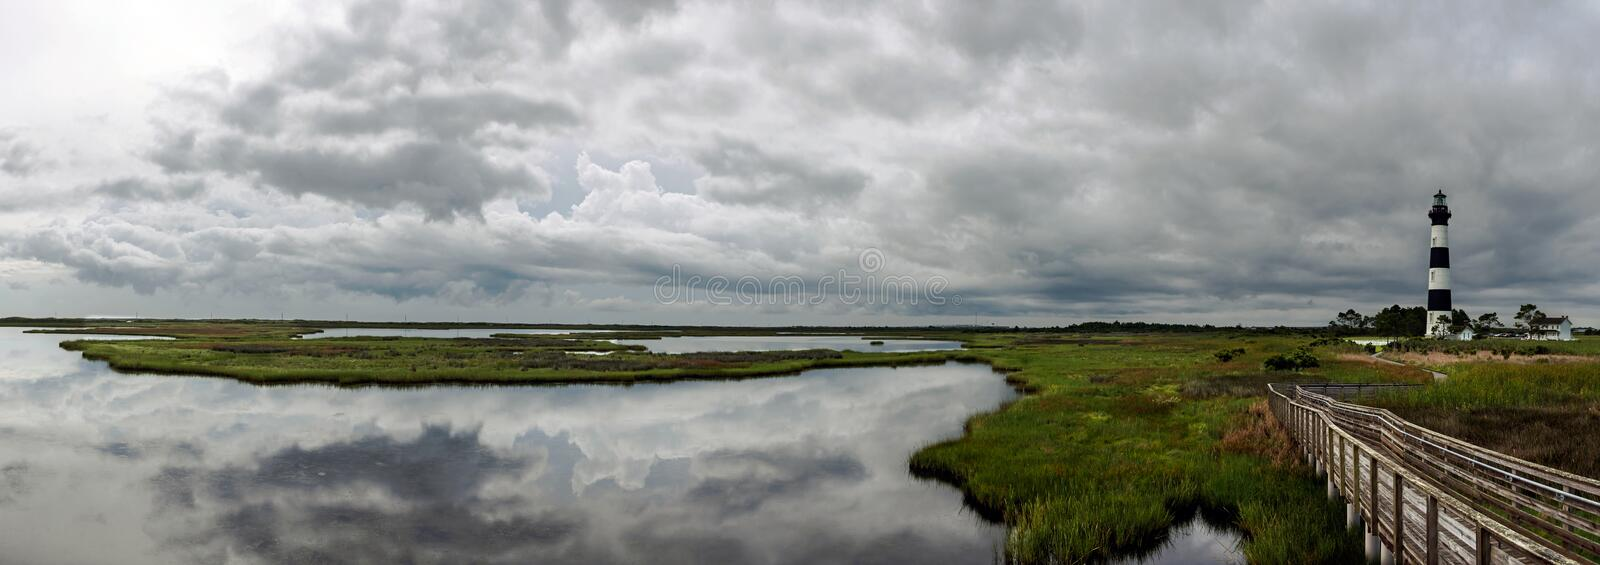 Panoramic view of lighthouse and surrounding marshlands. A panoramic shot of the Bodie Island Lighthouse and surrounding wetland marshes and the clouds royalty free stock photography